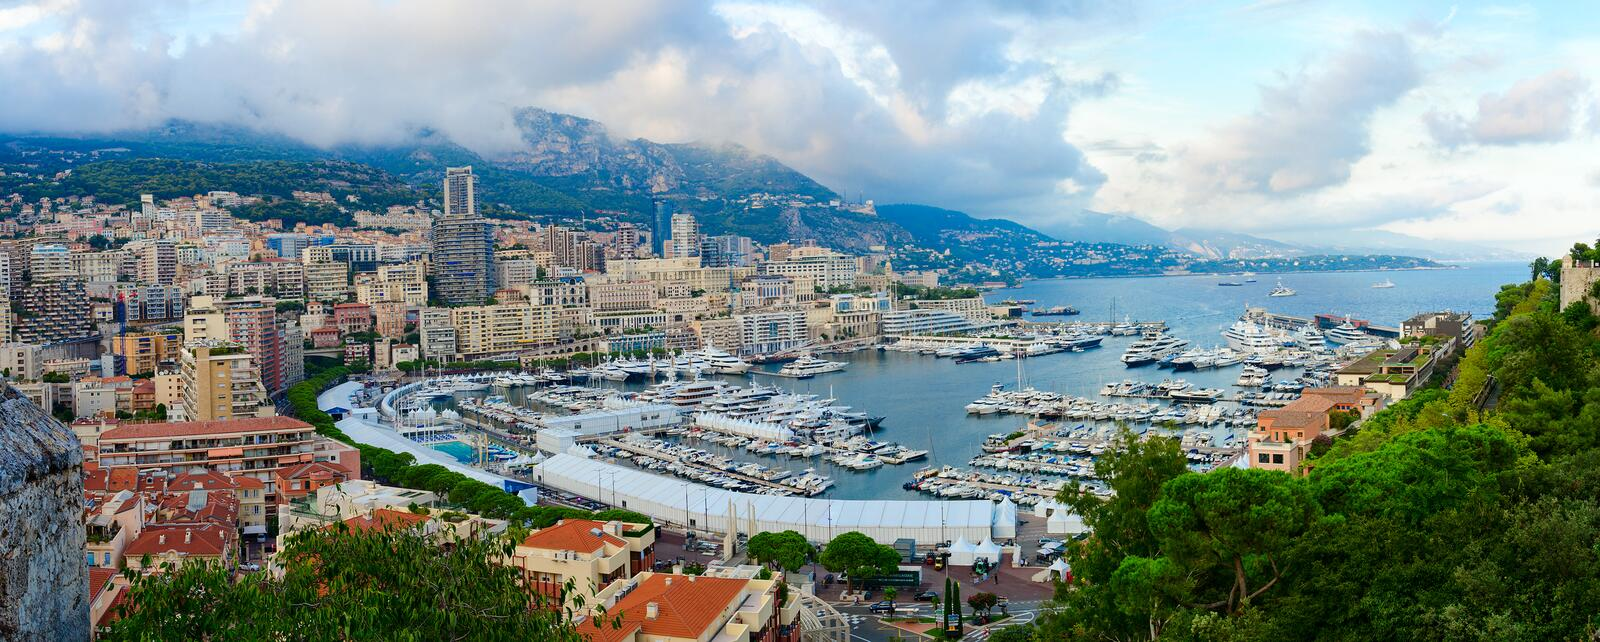 Beautiful panoramic view of port area La Condamine and Monte Carlo, Principality of Monaco royalty free stock photo